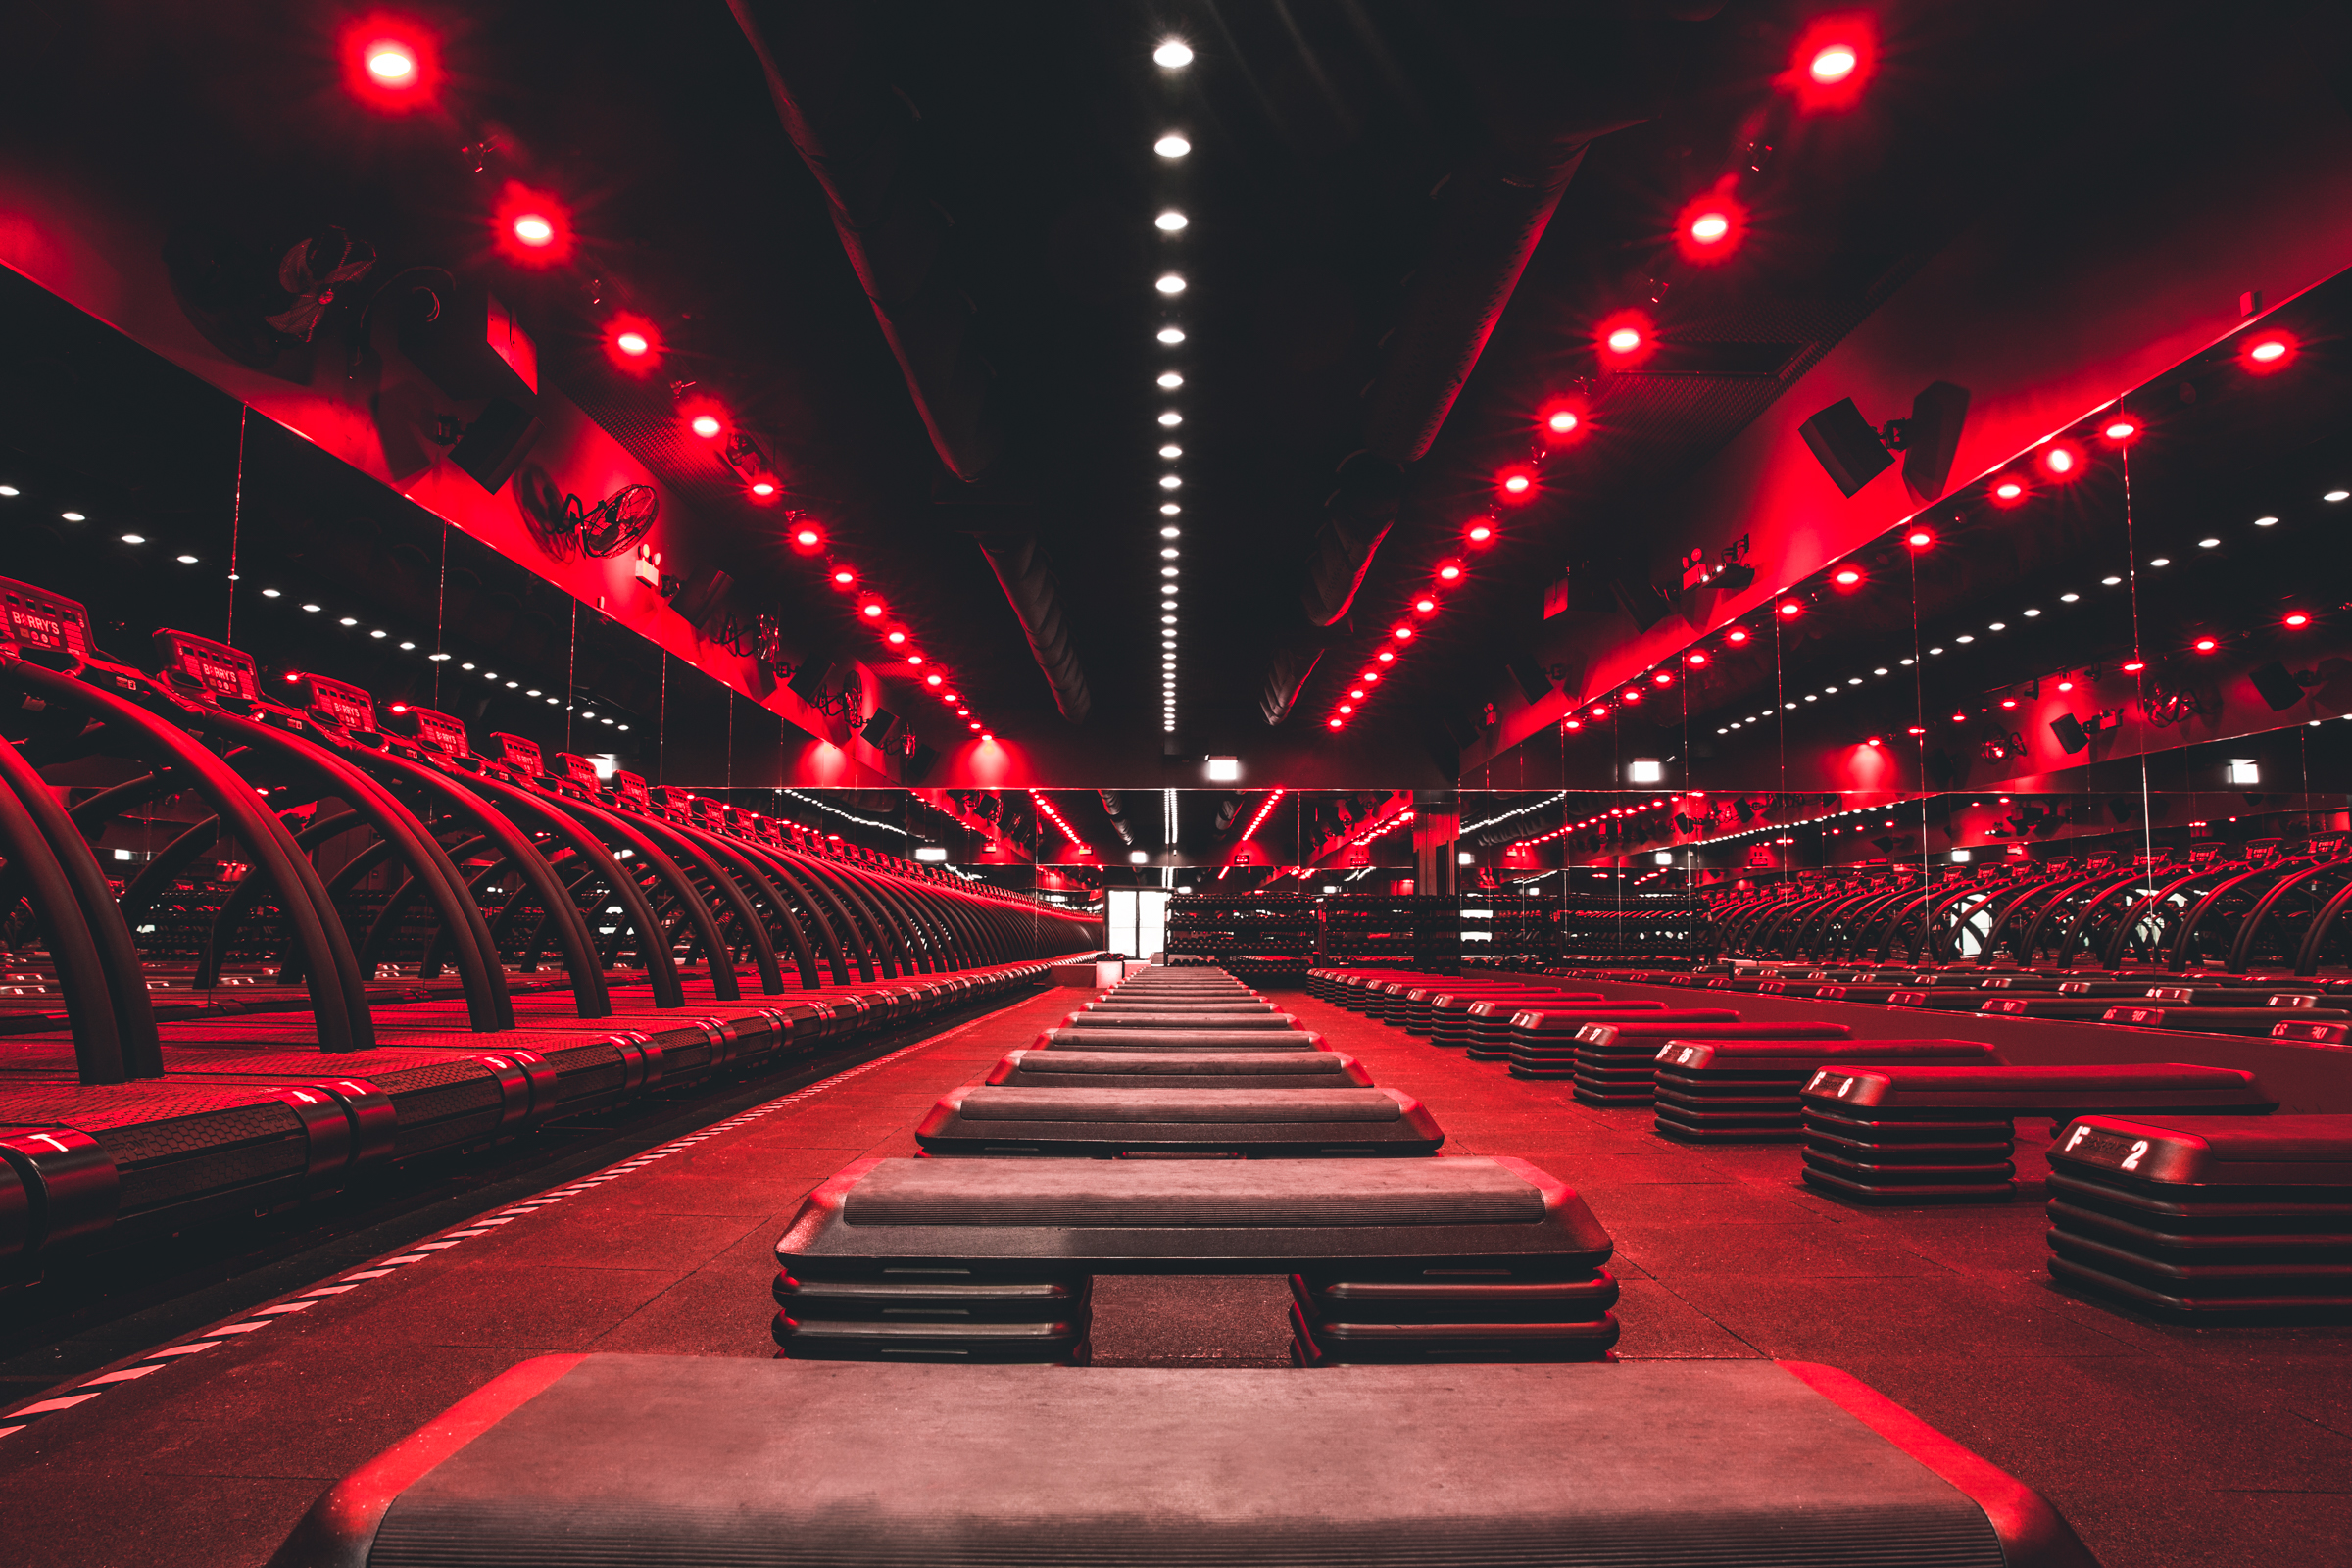 Classes combine resistance training and cardiovascular work on the treadmill. (Image: Courtesy Barry's Bootcamp)